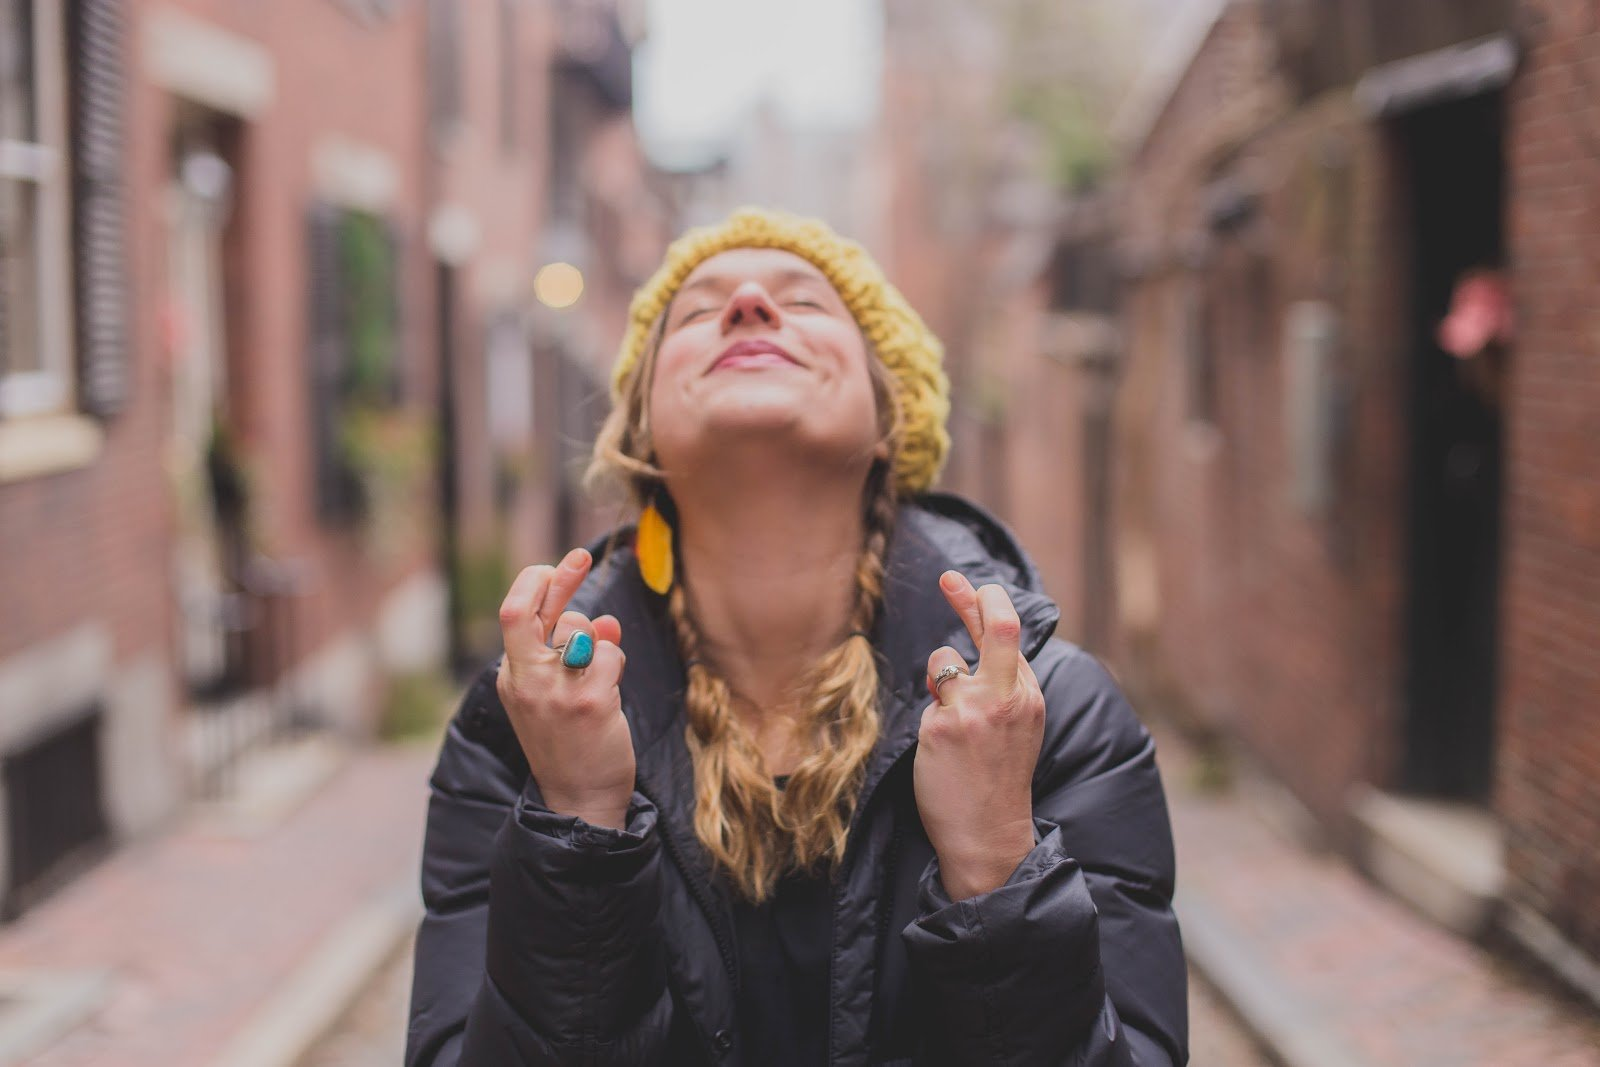 woman on street with fingers crossed